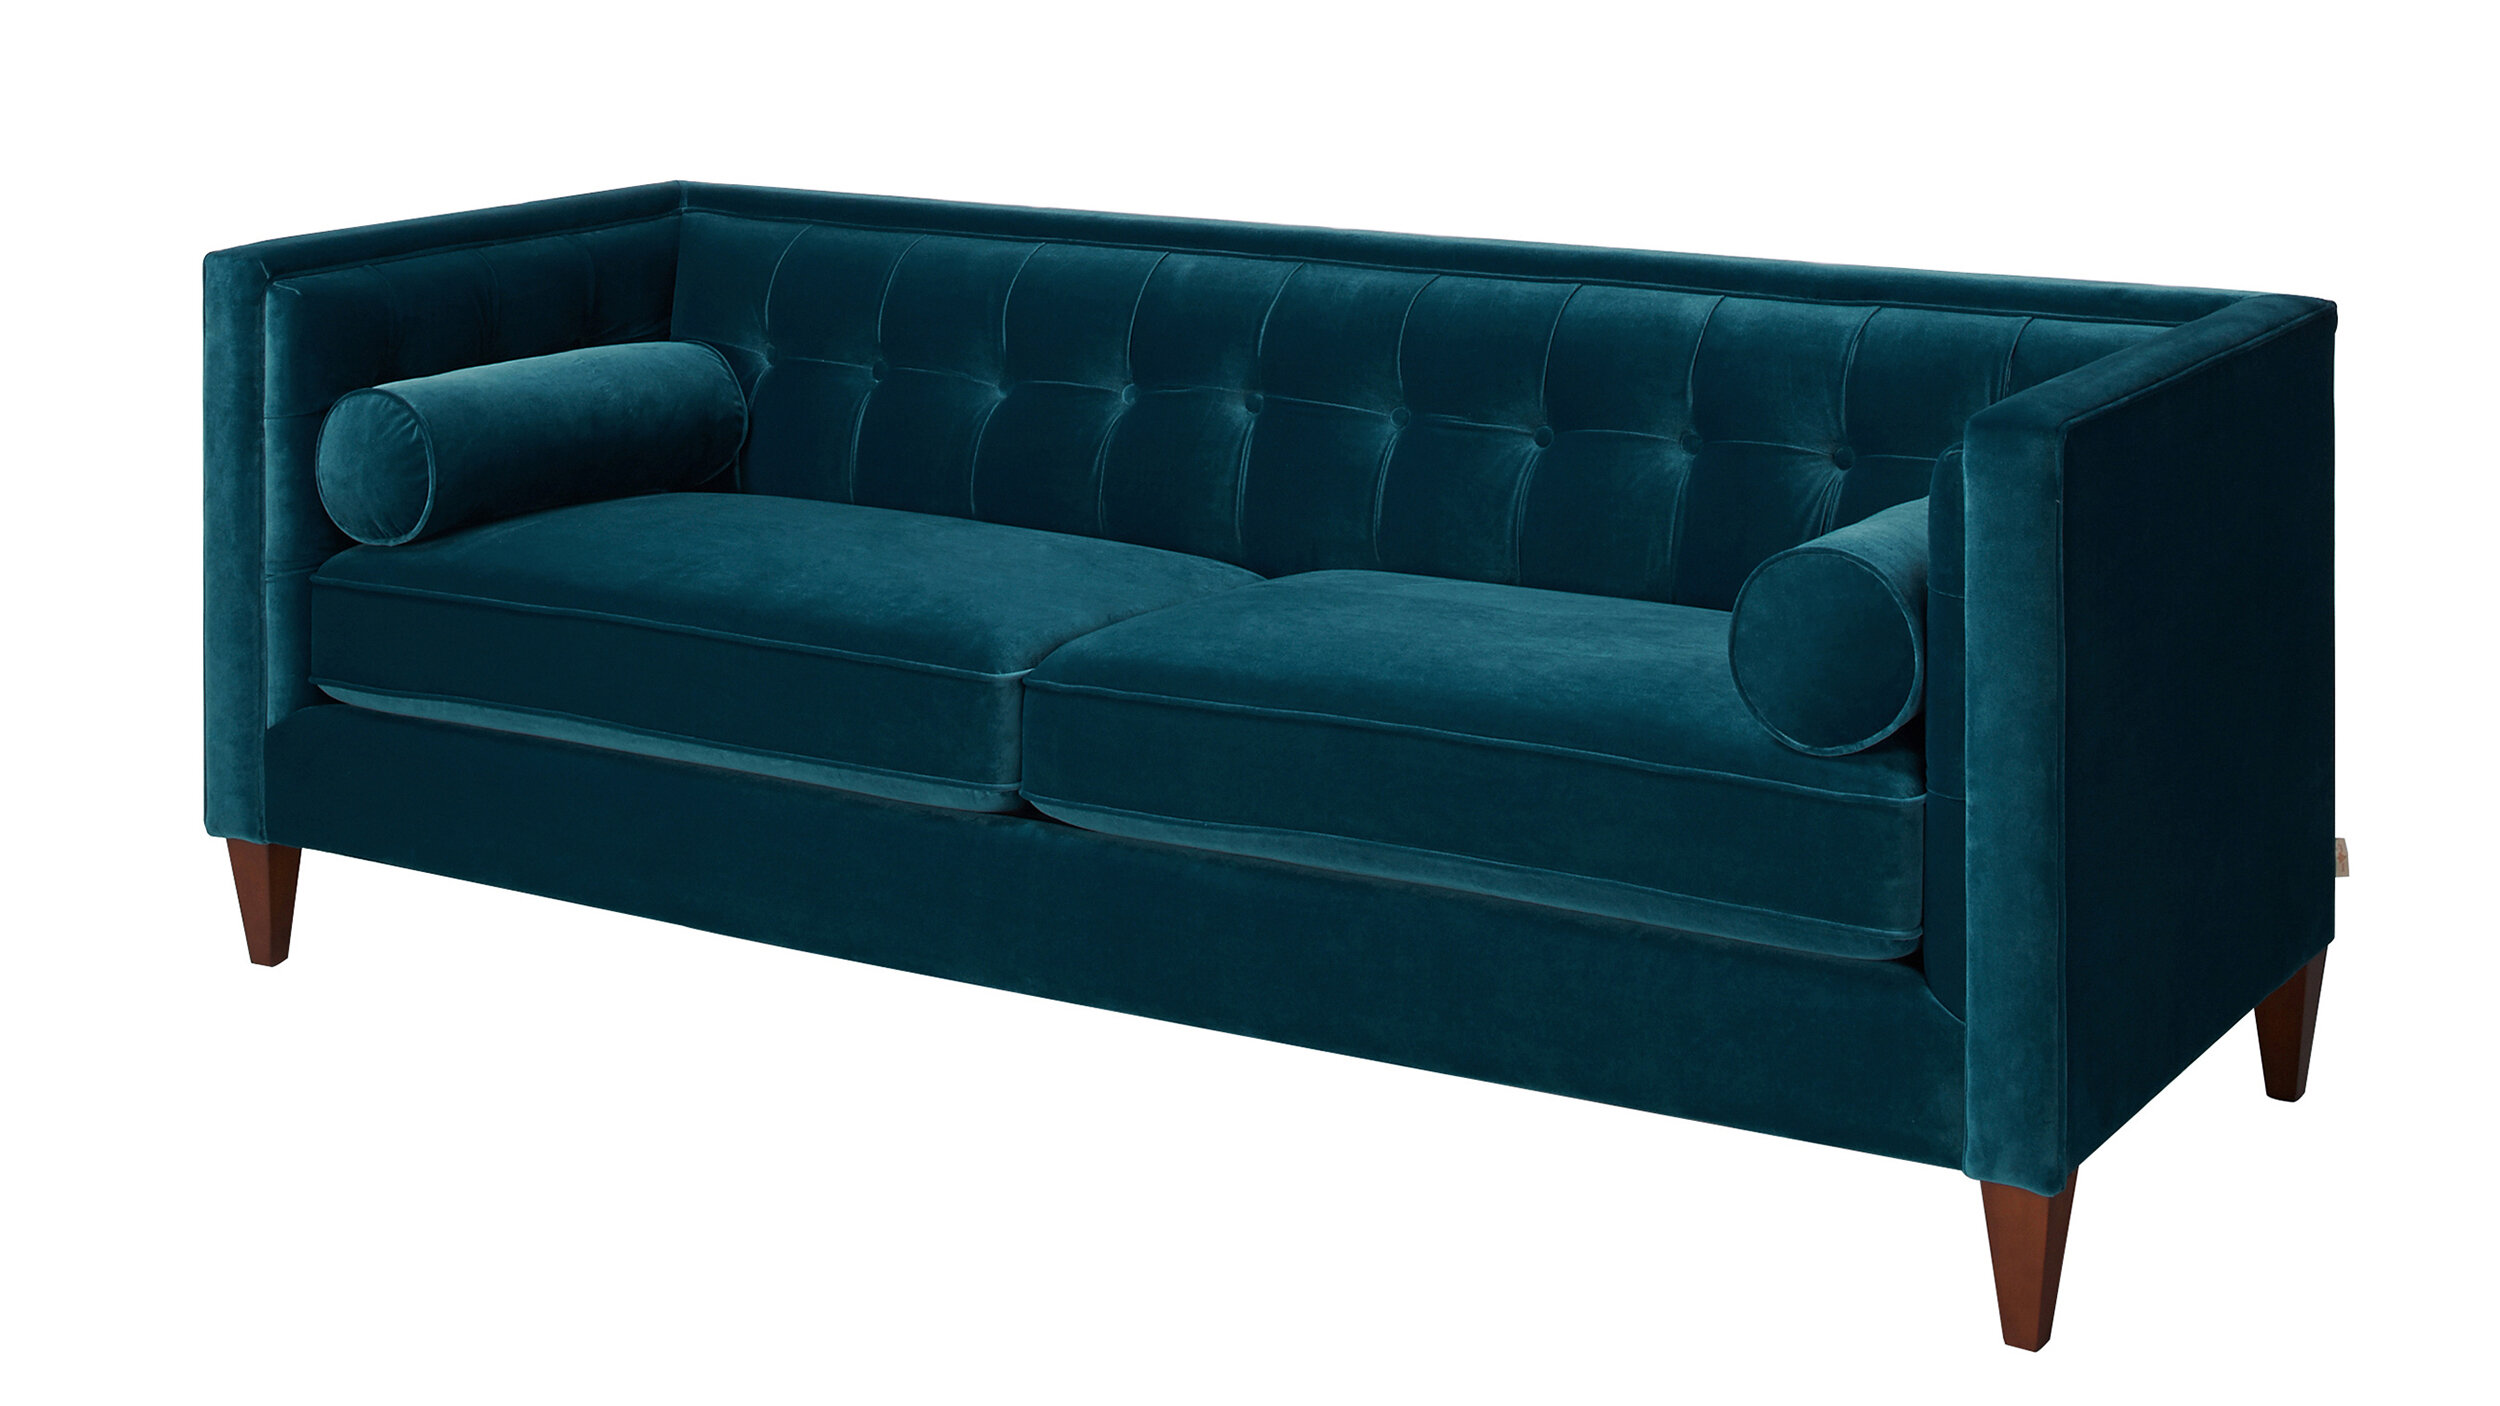 Amazing Willa Arlo Interiors Harcourt Tufted Chesterfield Sofa In Teal U0026 Reviews |  Wayfair